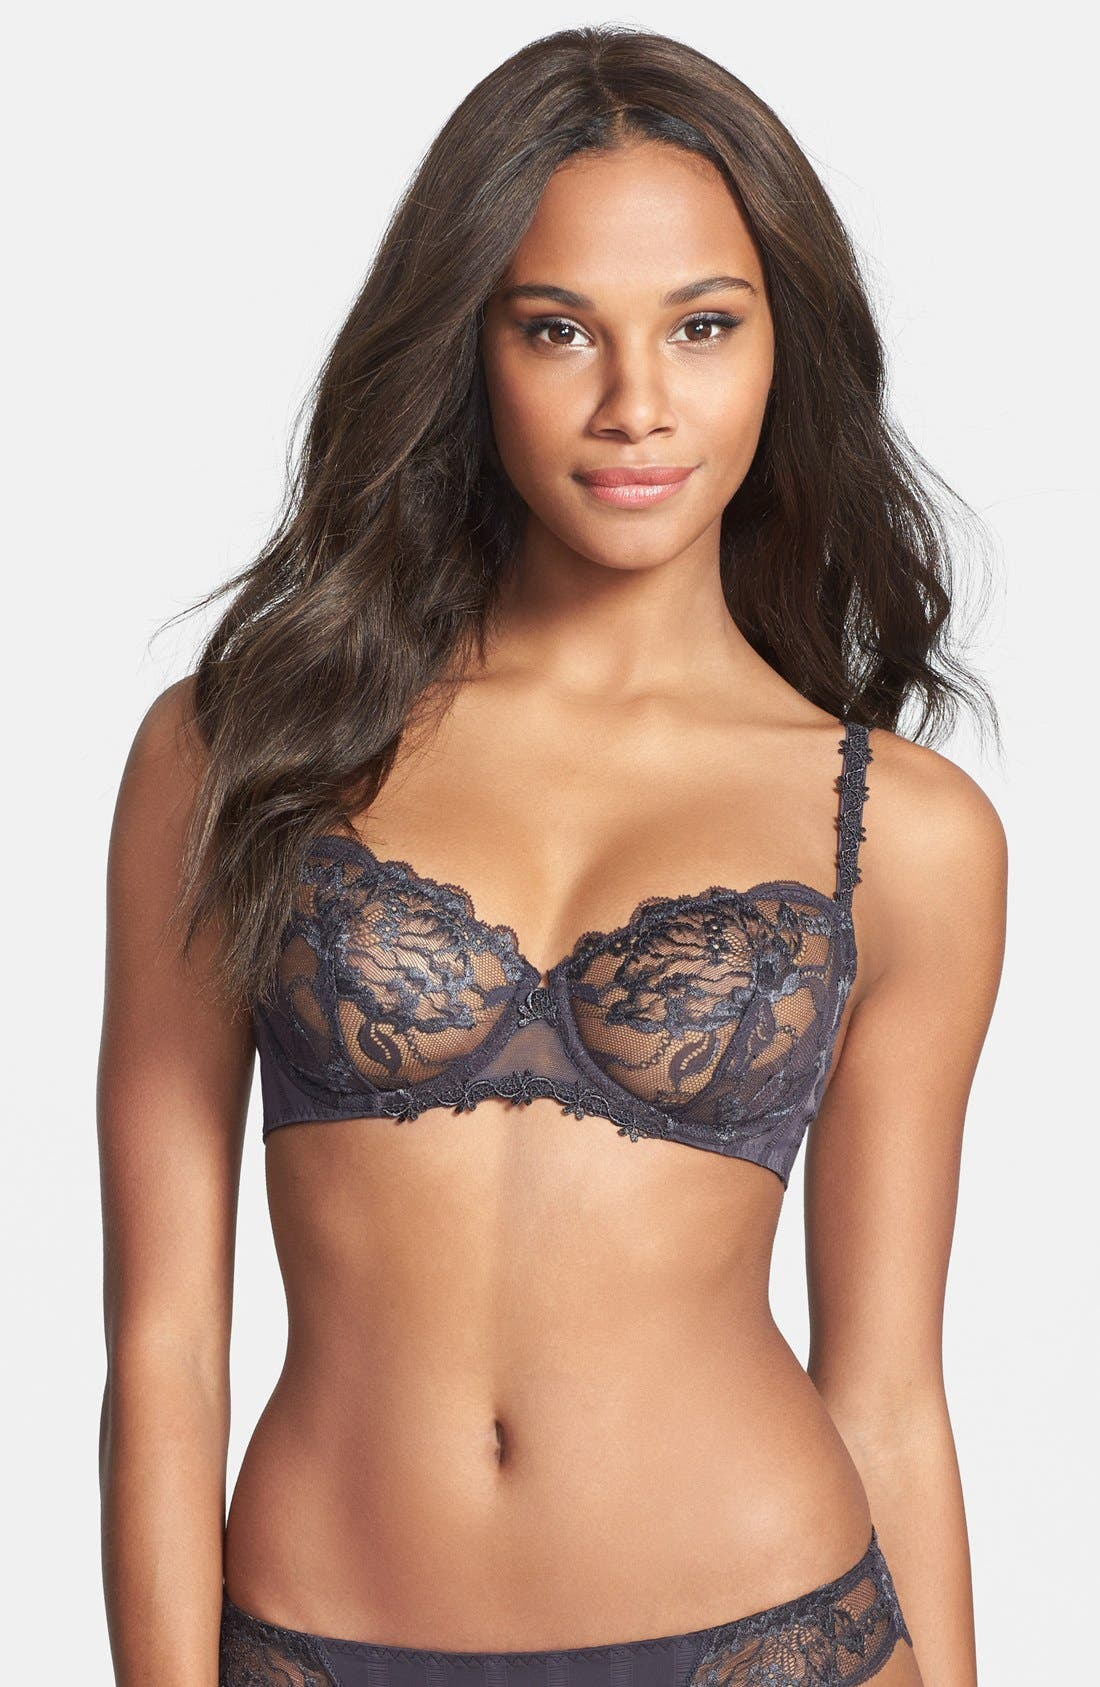 'Amour' Underwire Demi Bra,                             Main thumbnail 2, color,